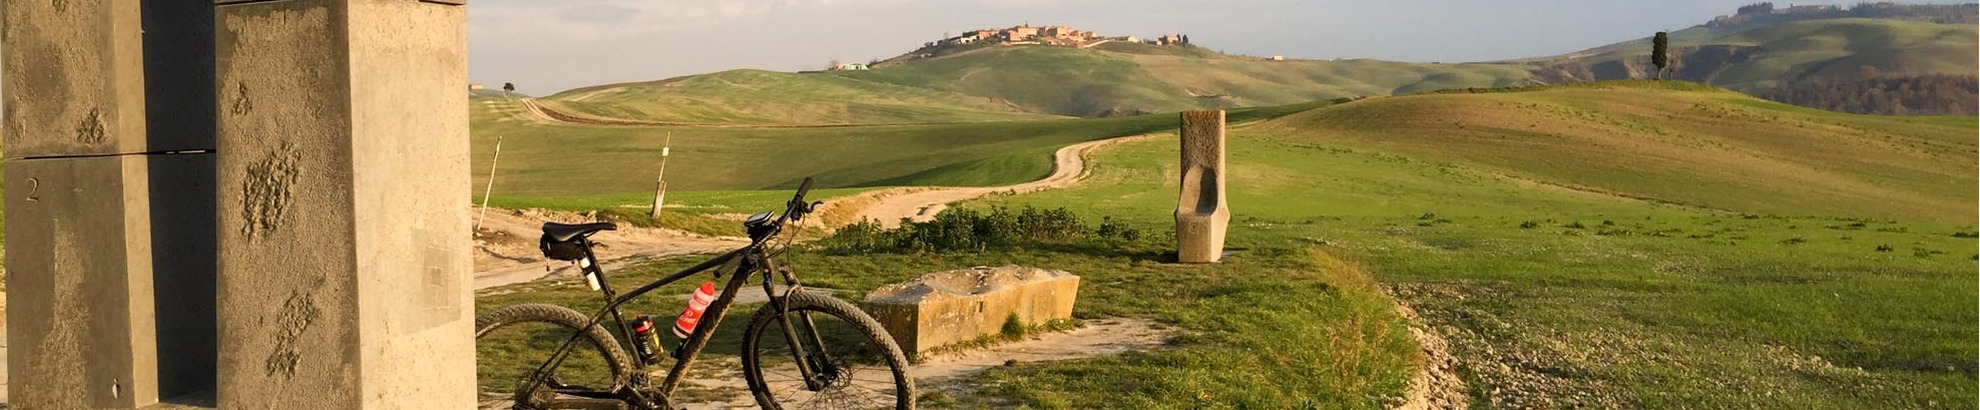 Self guided bike tours in Tuscany